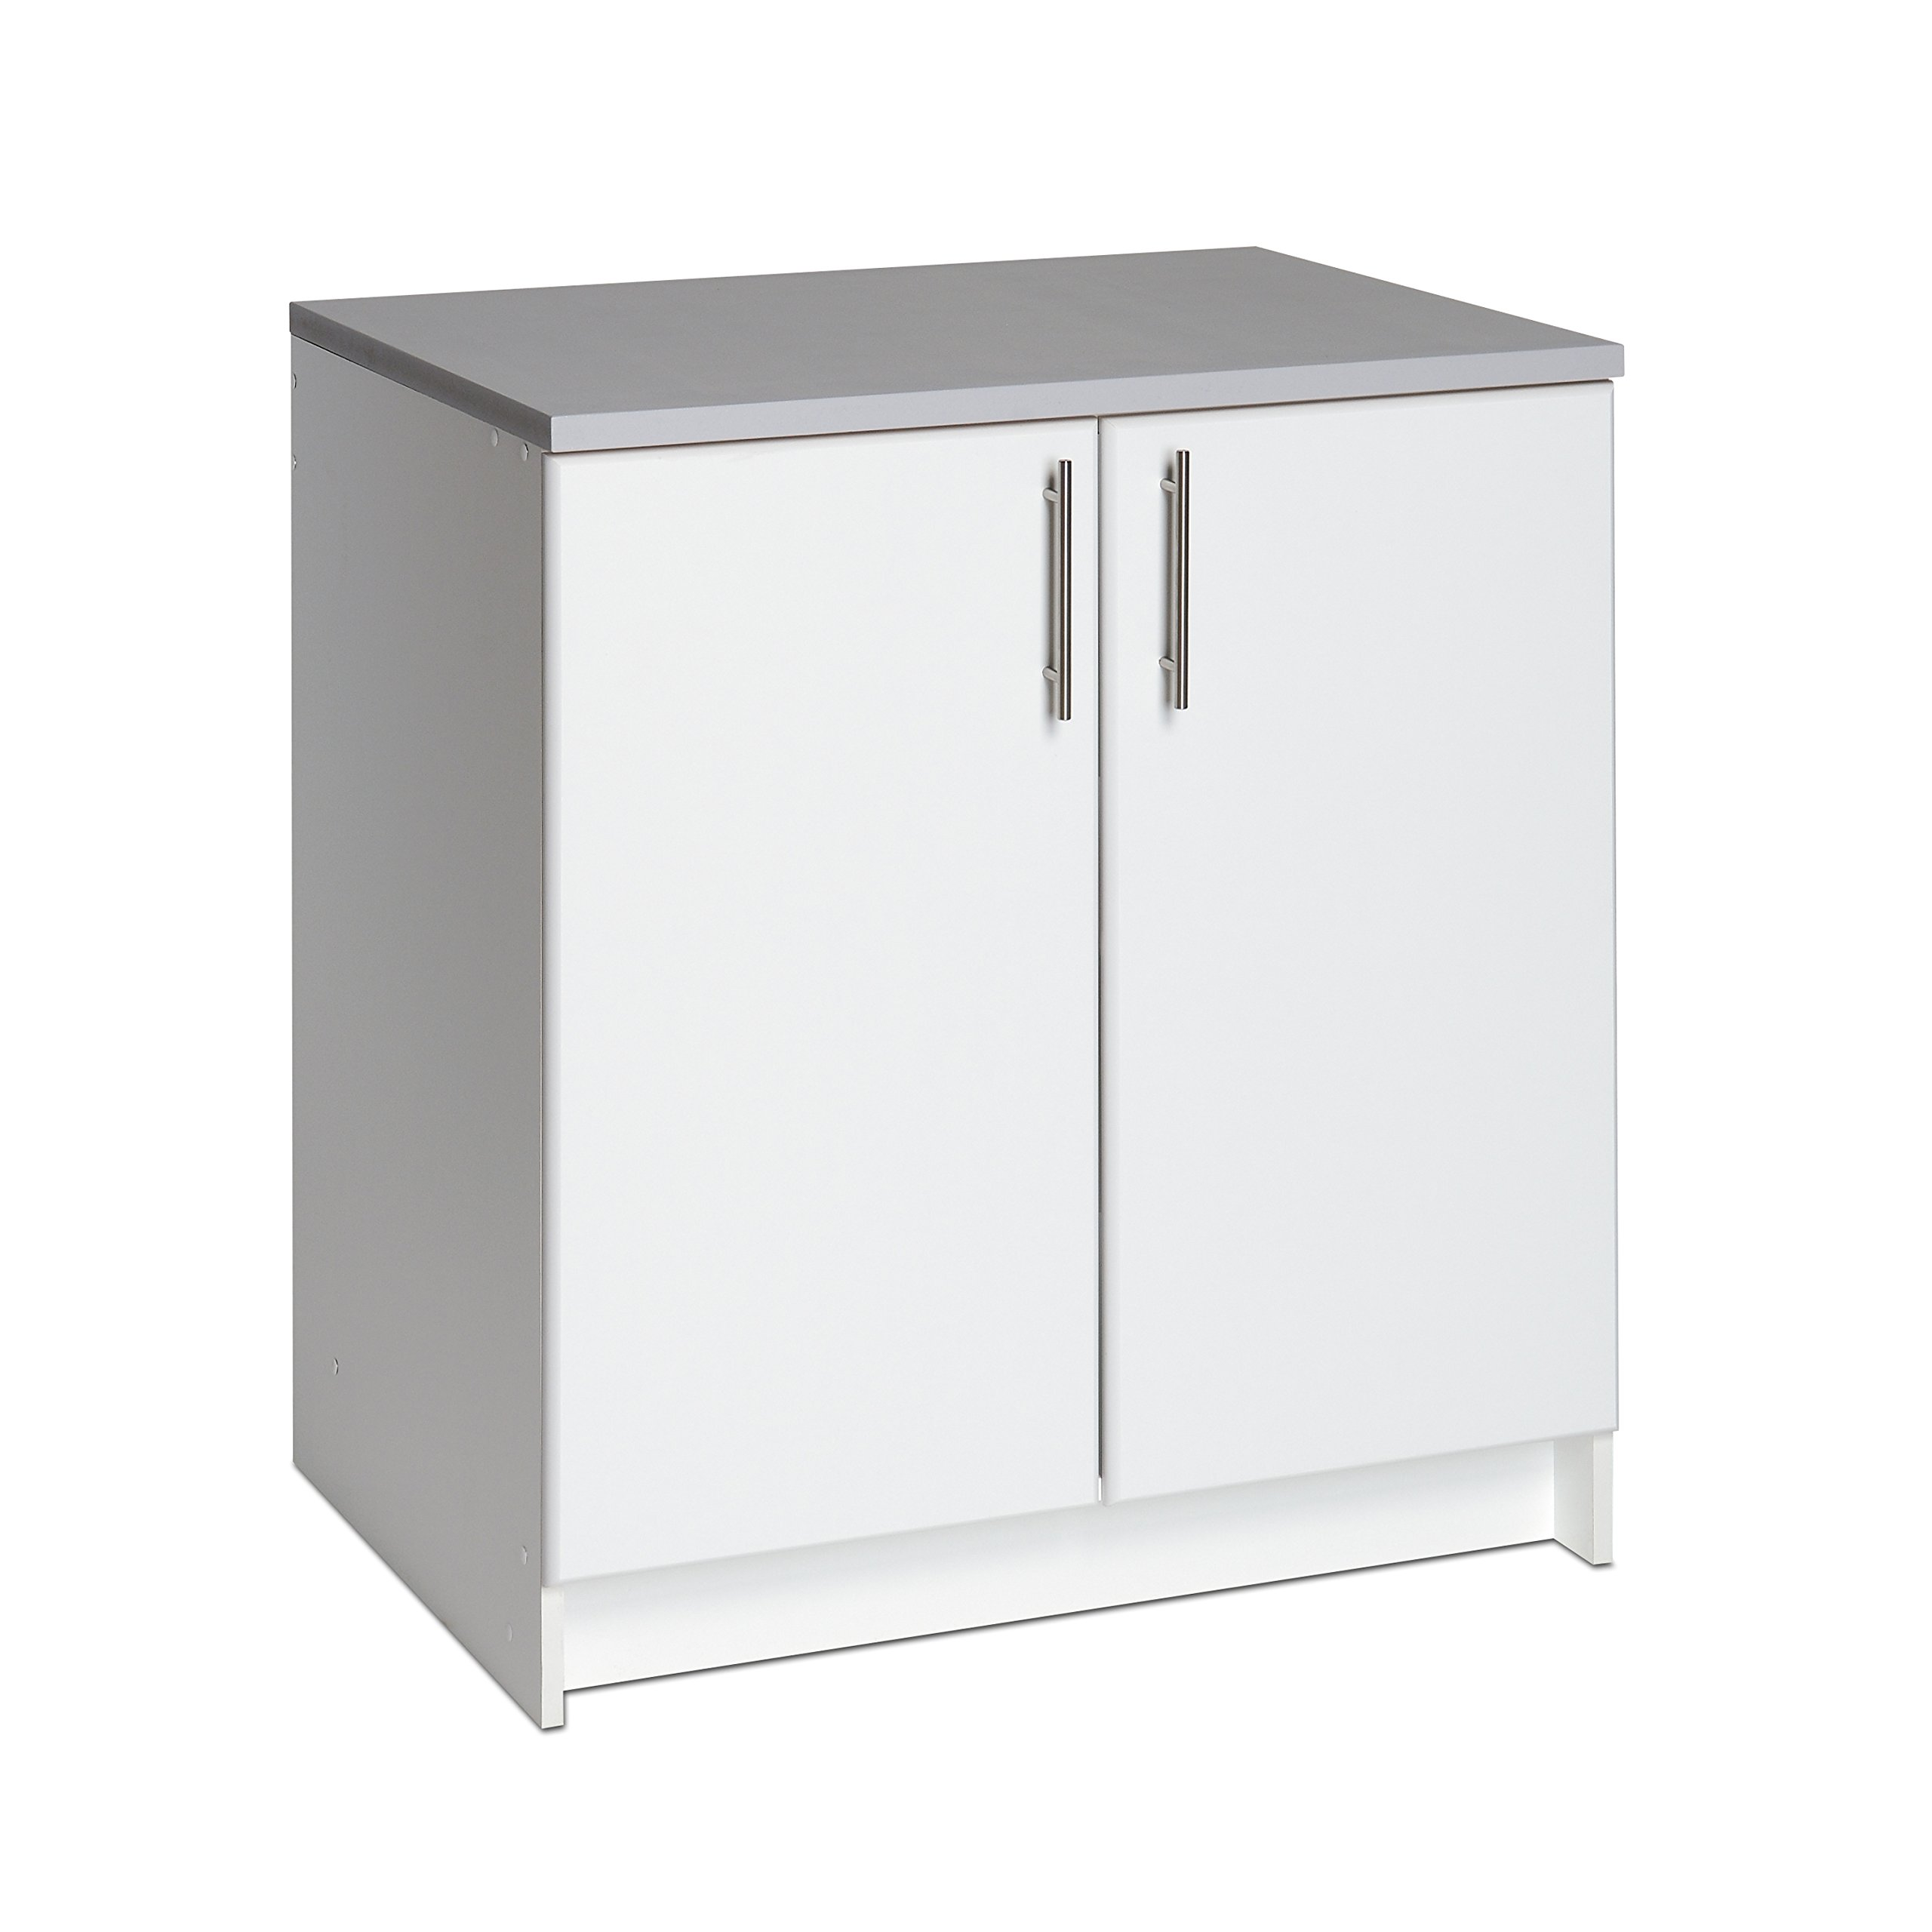 base kitchen cabinets amazon com rh amazon com base kitchen cabinets with glass doors base kitchen cabinets for sale